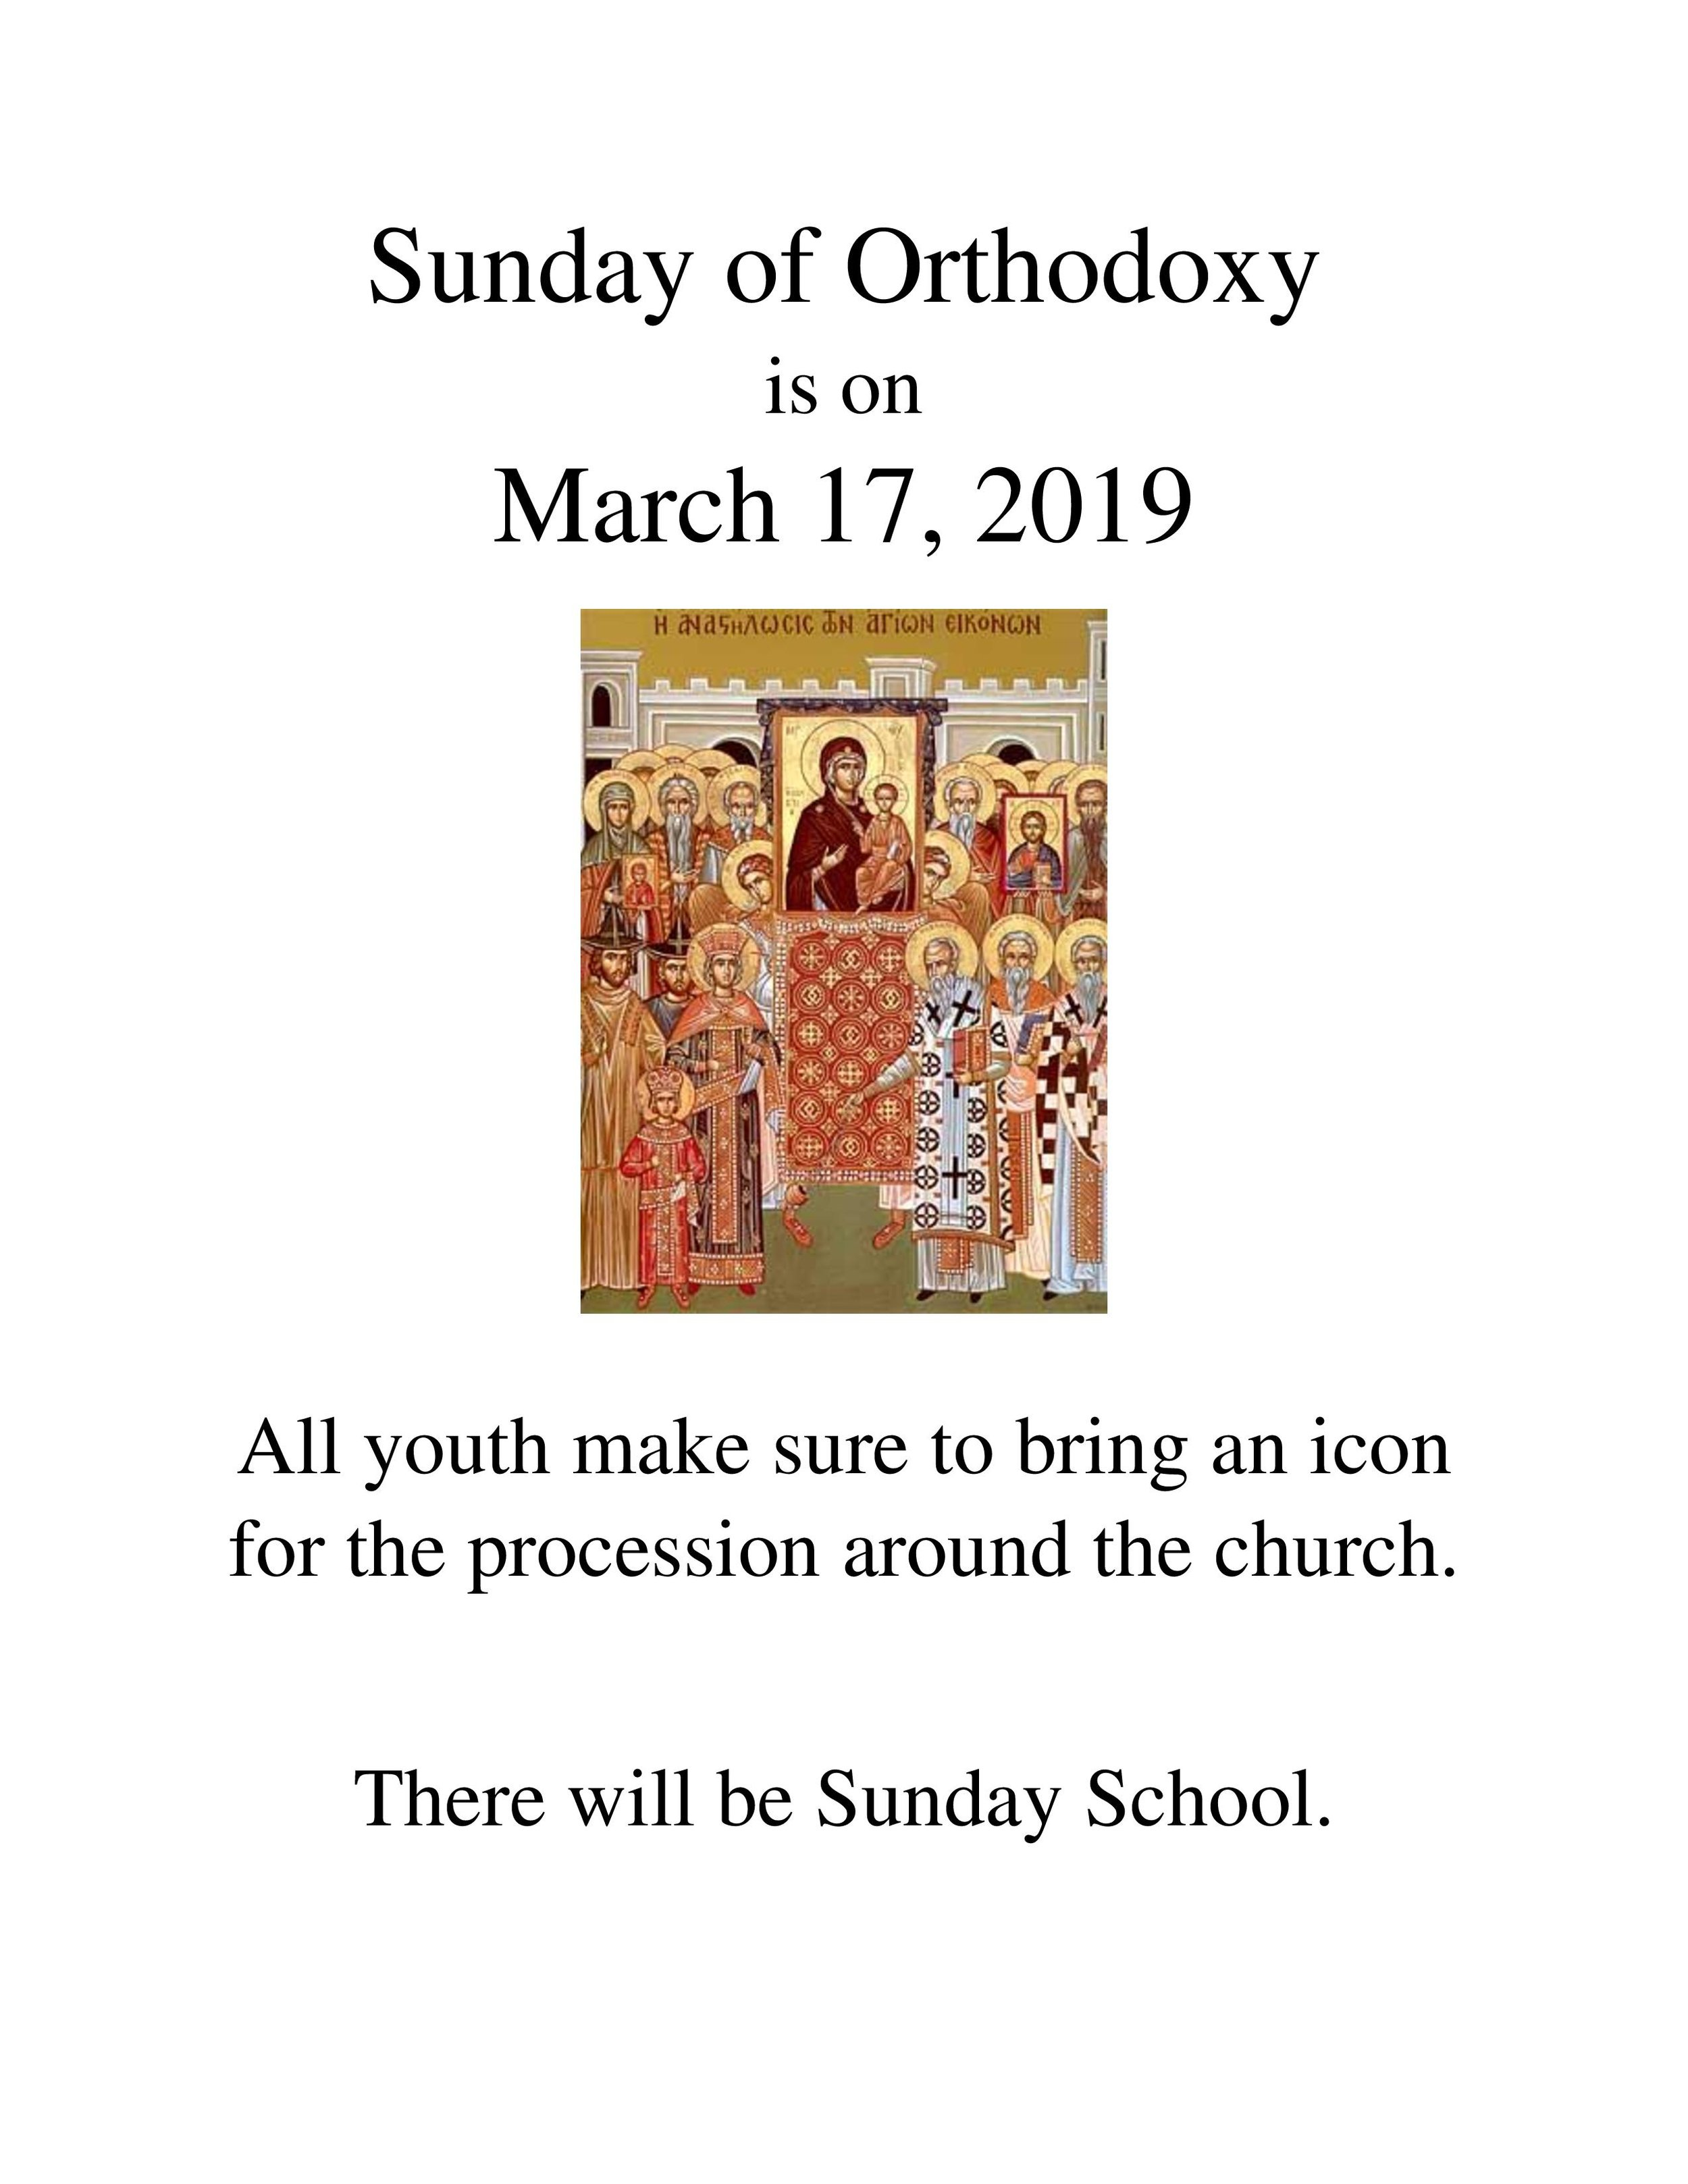 Sunday of Orthodoxy Flyer-page-001.jpg